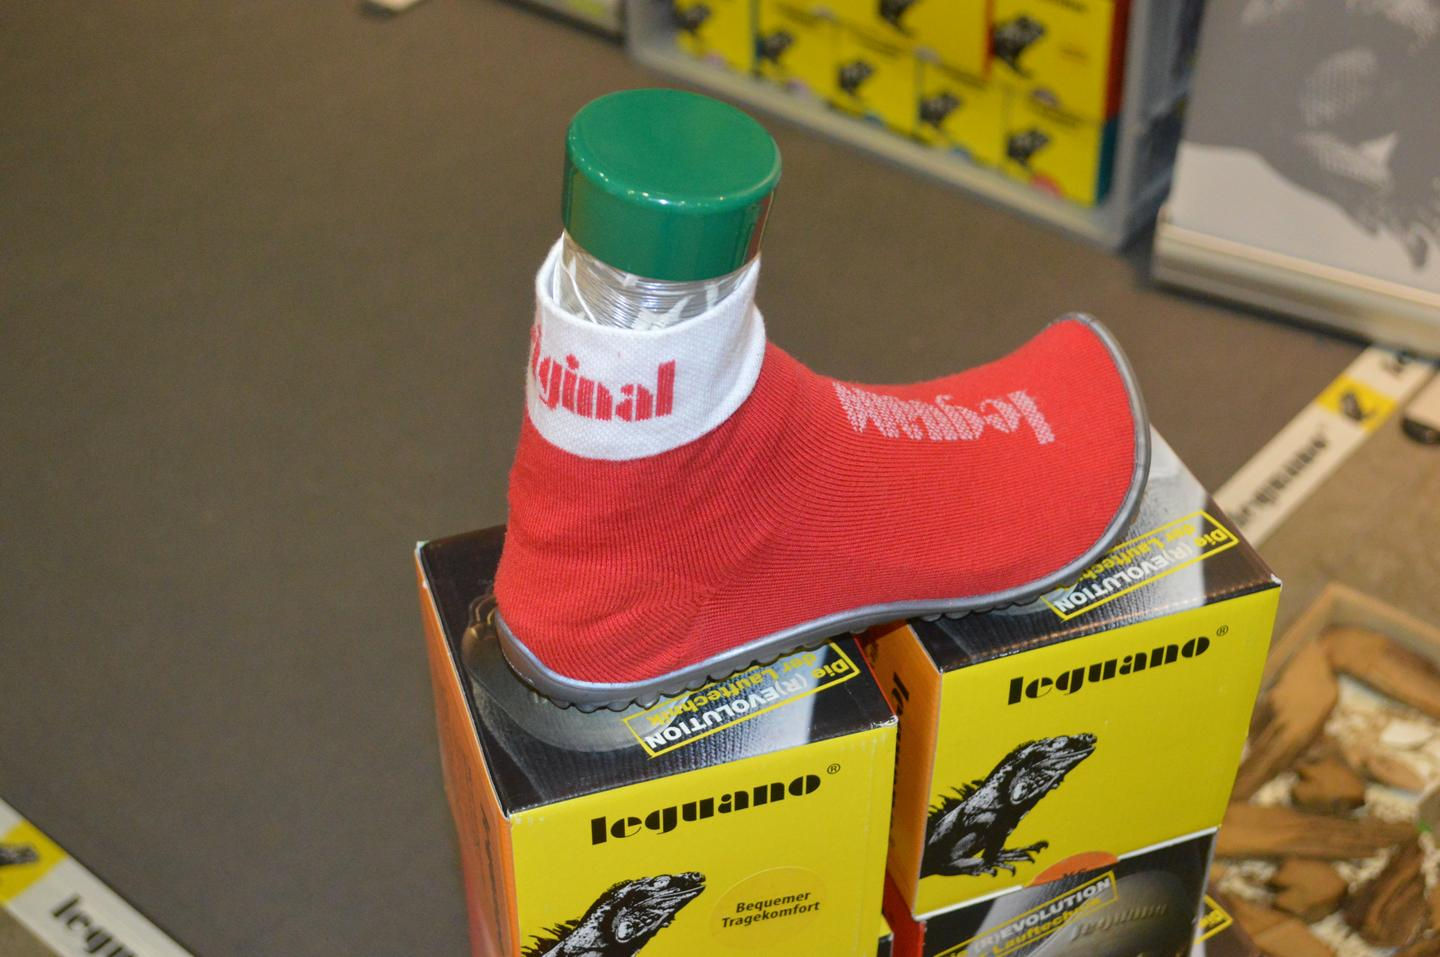 The barefoot-leguano shoe is a sock with a studded PVC sole